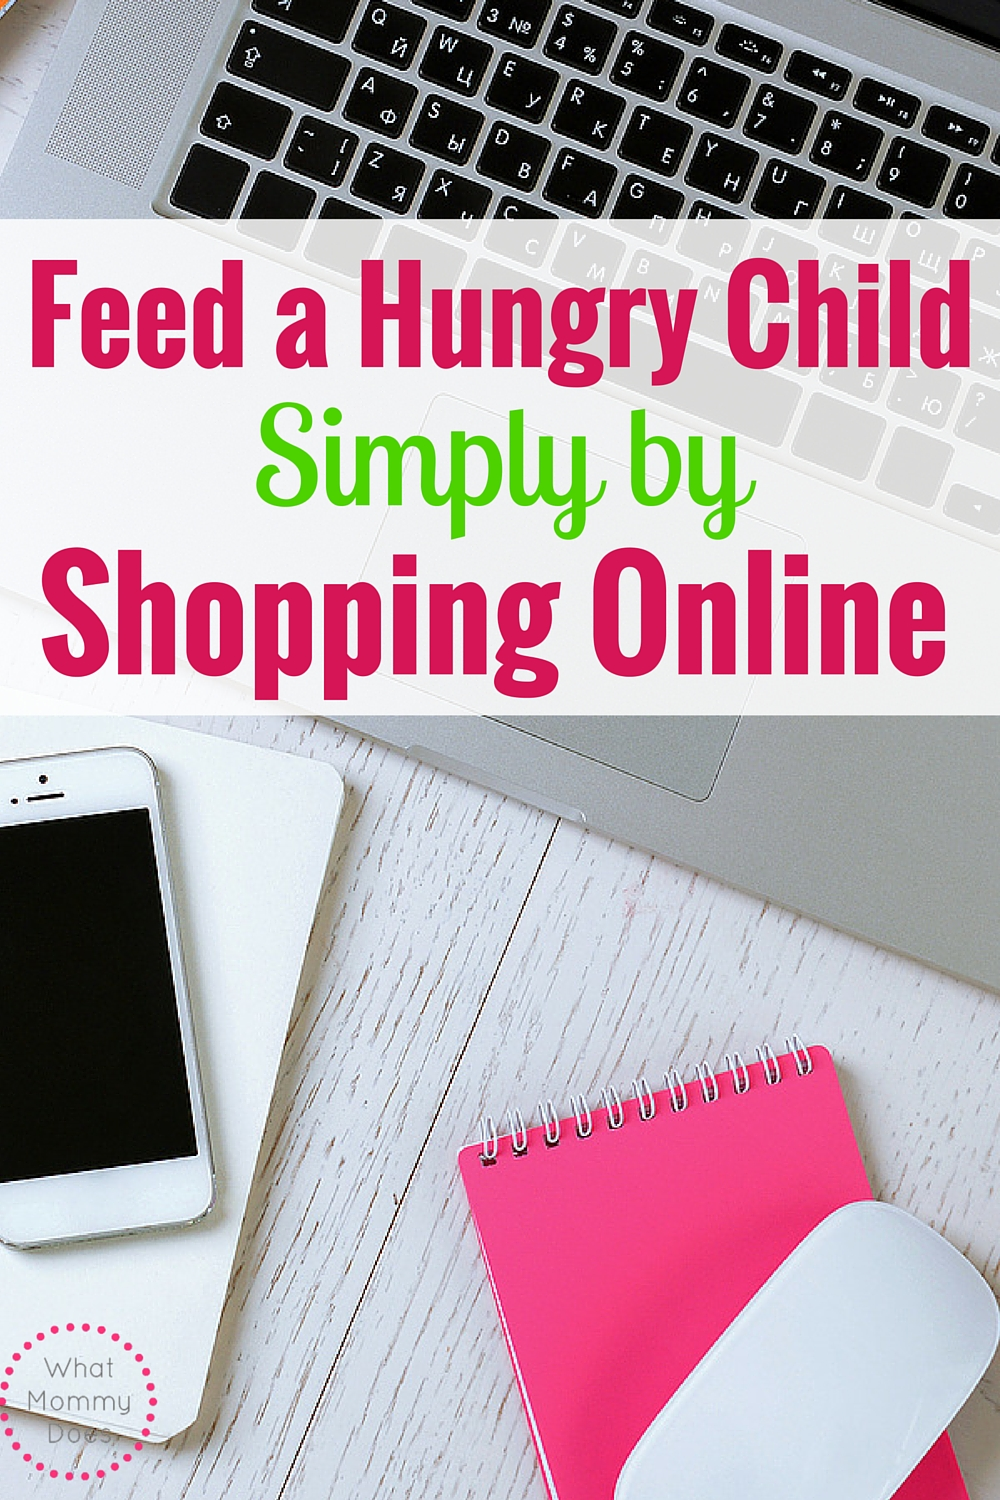 Learn how you can use Save1 to save money as well as feed hungry children across the world!